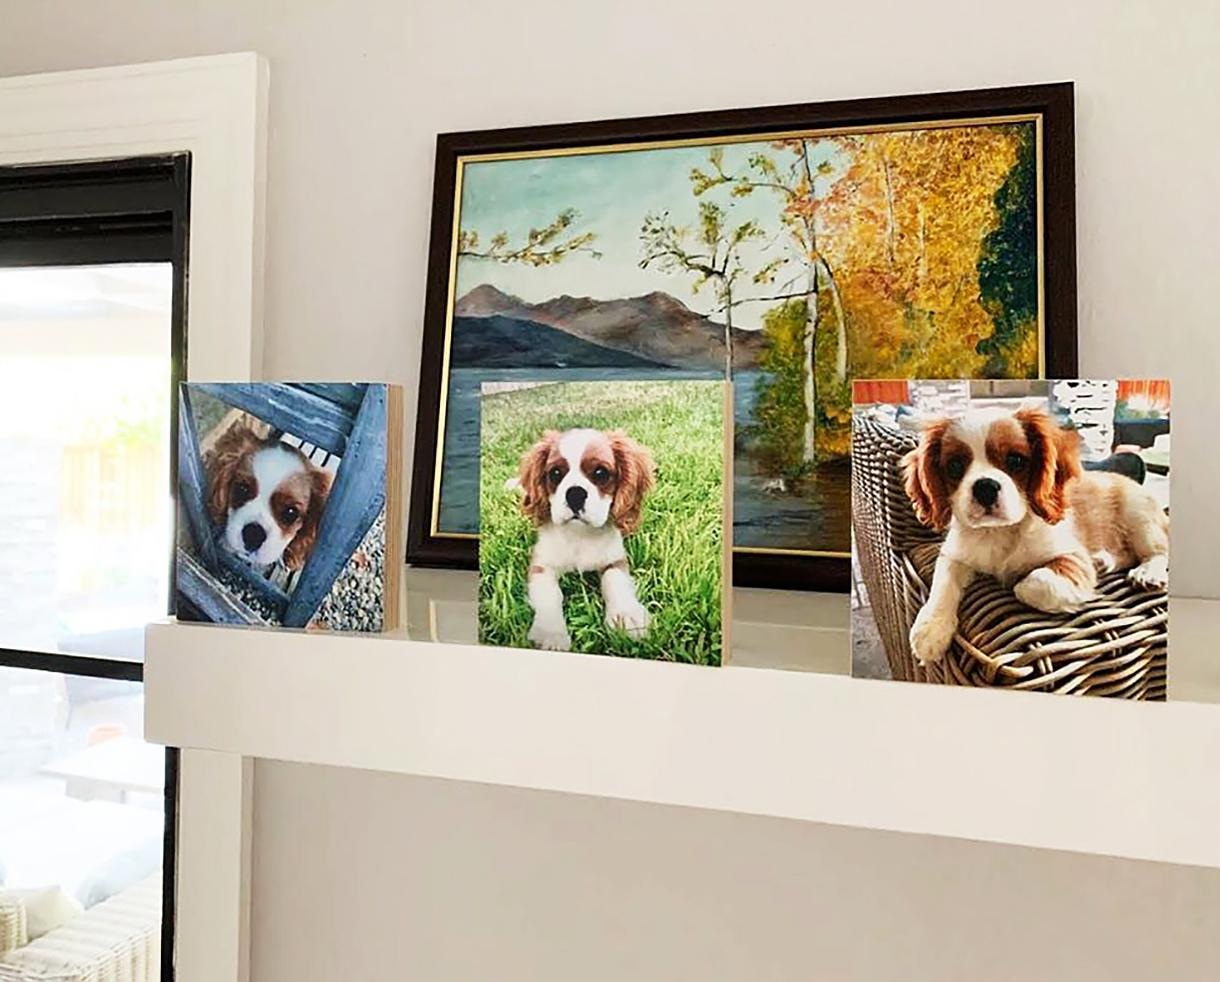 Up to 53% Off Handmade Wood Photo Blocks - Makes a Great Gift!